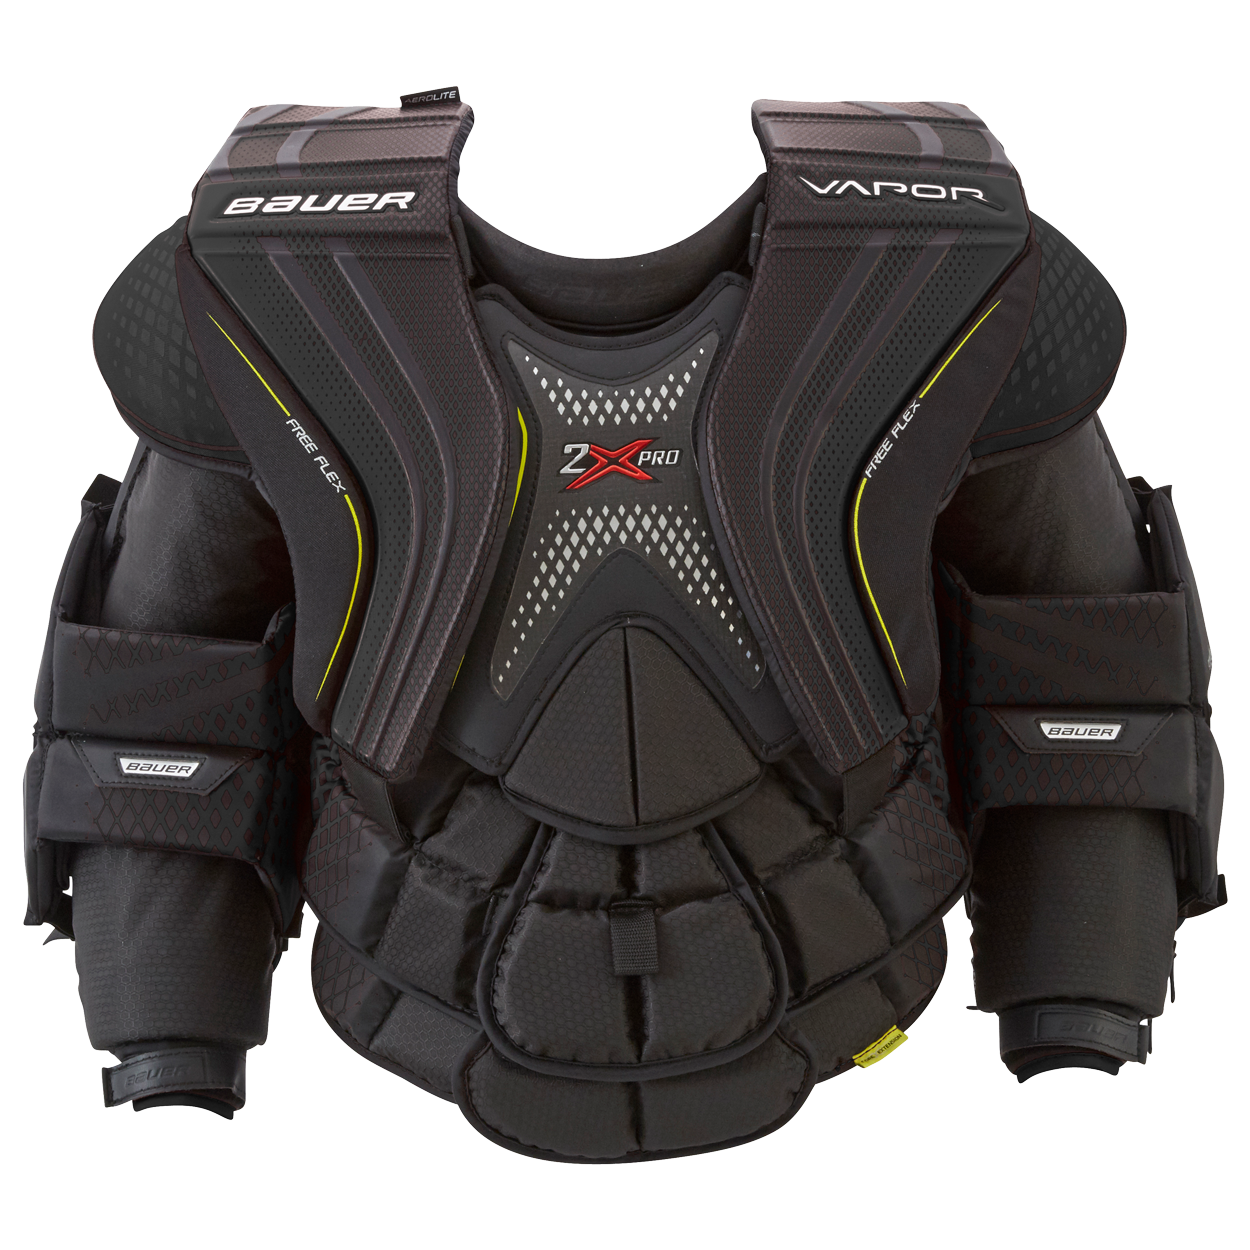 Vapor 2X PRO Chest Protector Senior,,Размер M